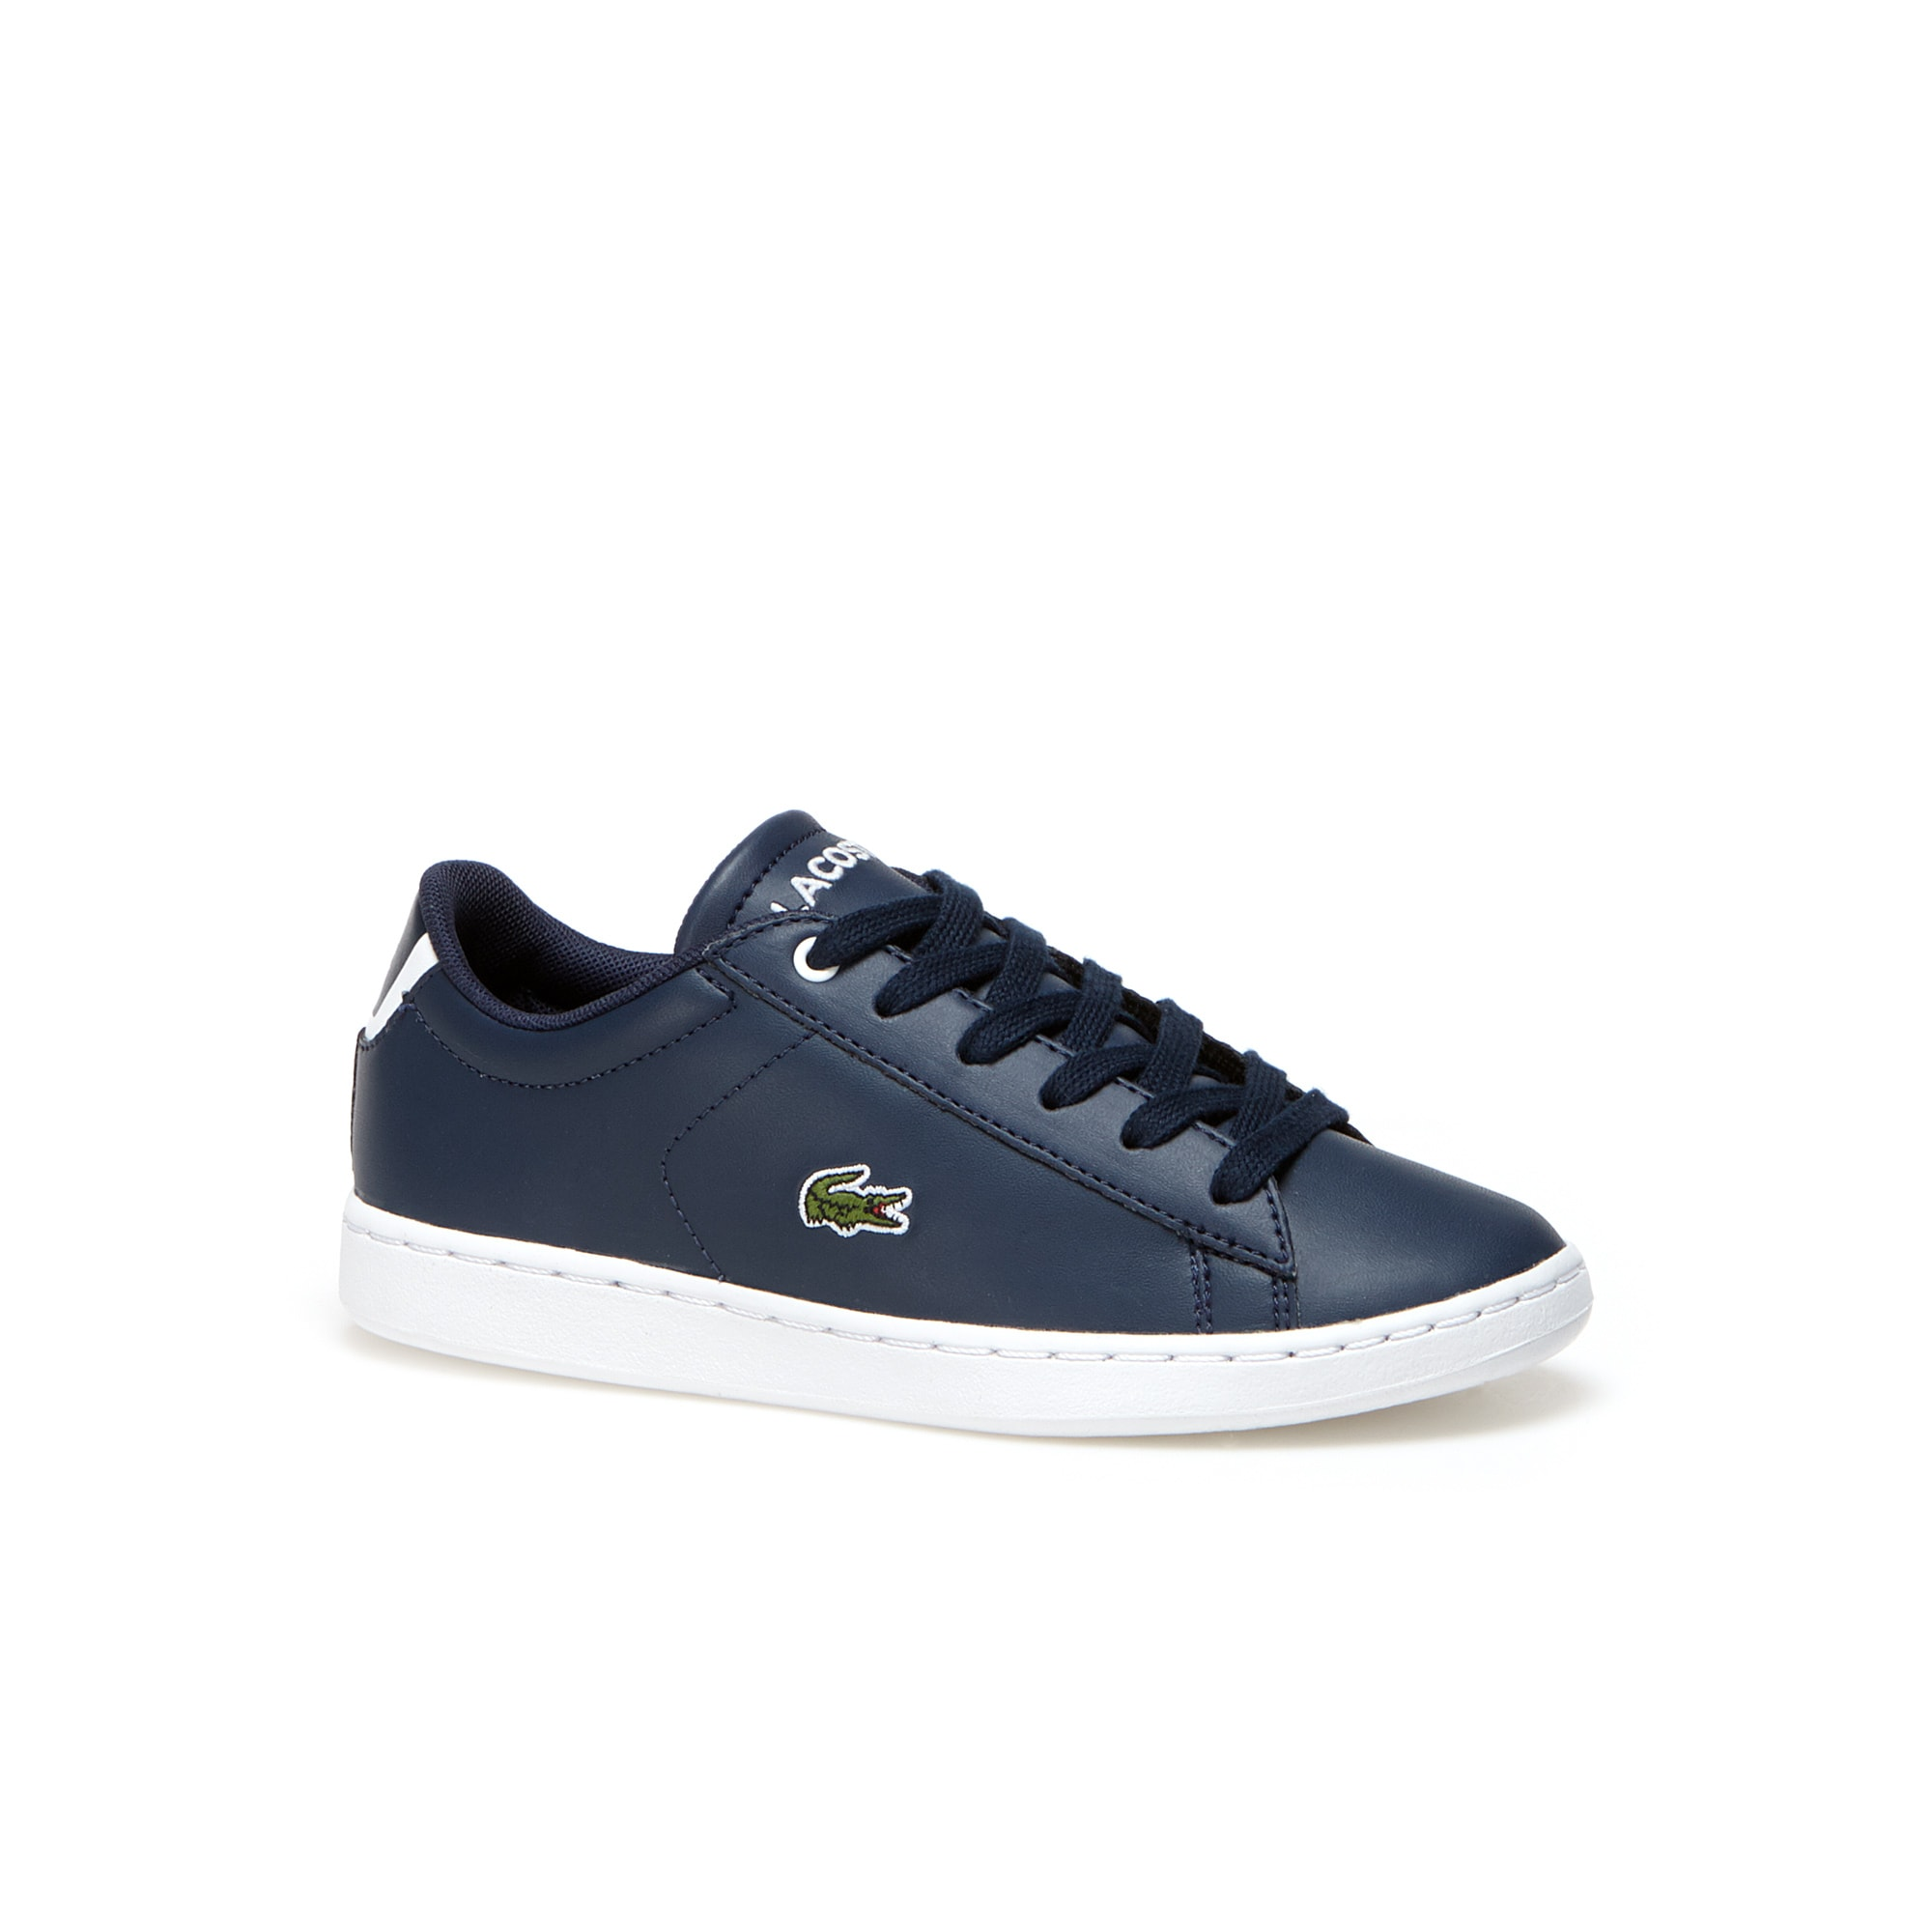 Sneakers Kids Carnaby Evo con stringhe